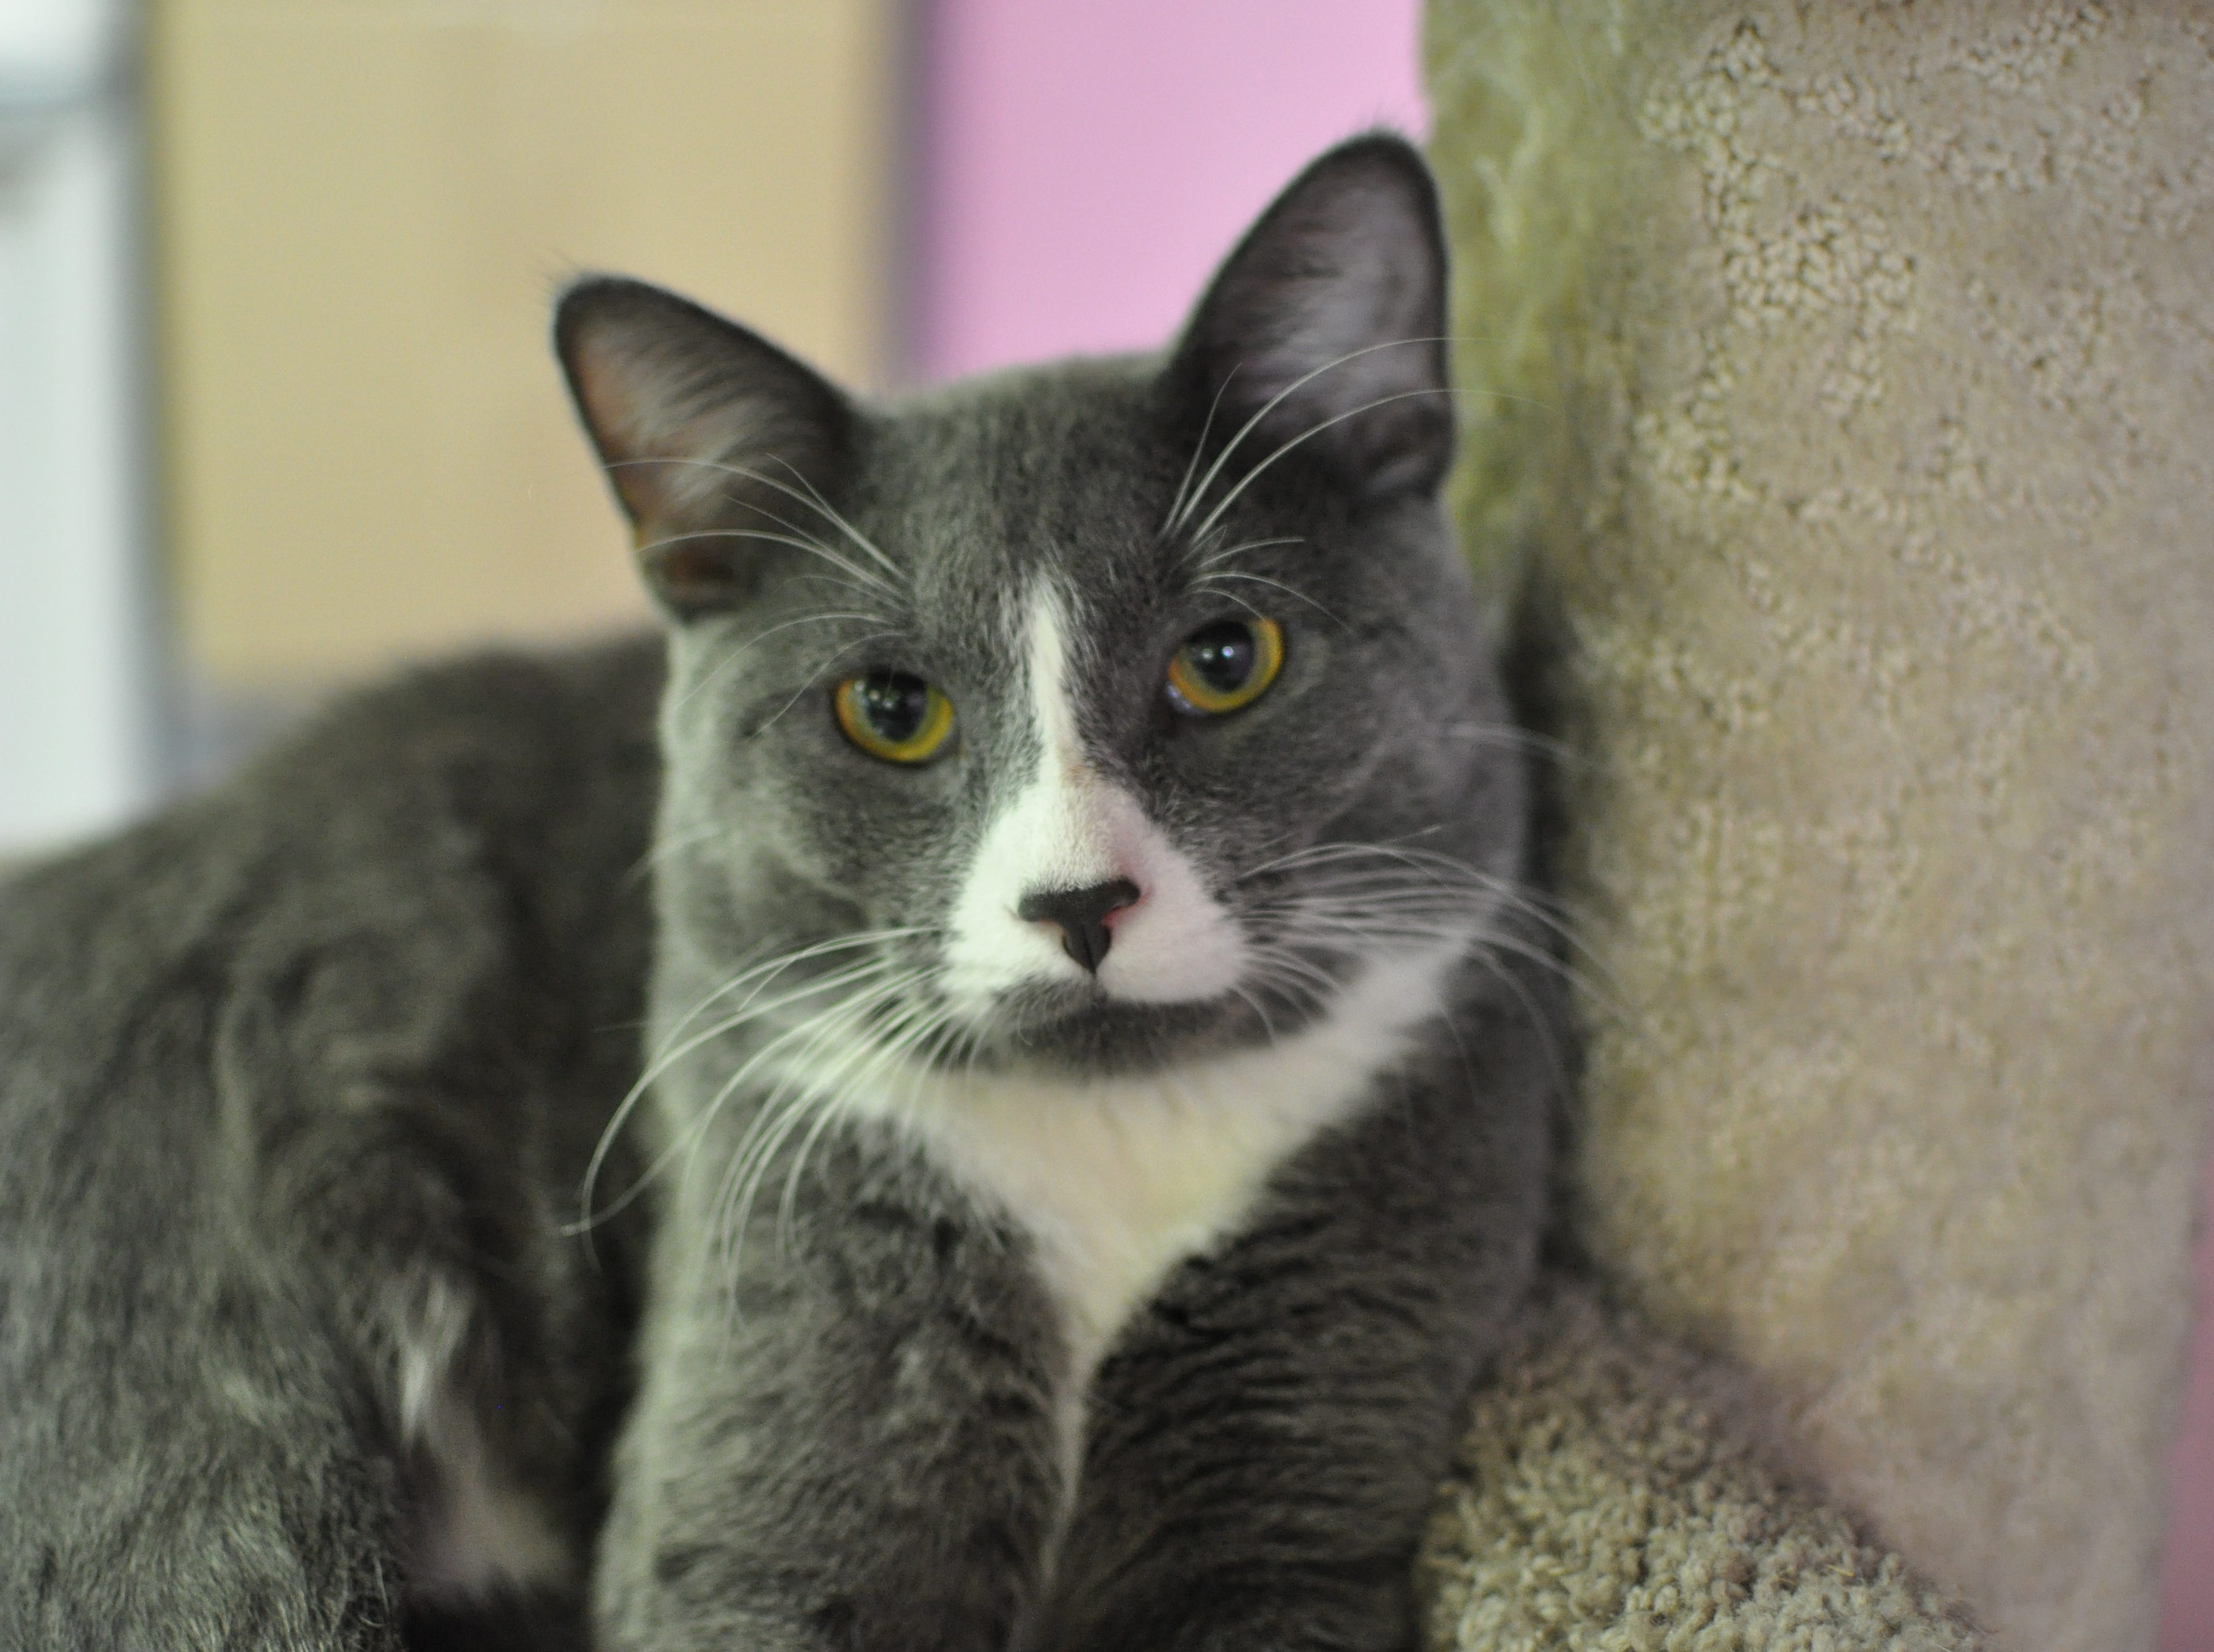 Tobasco, 5, loves to snuggle, be held and is very active. He is neutered.